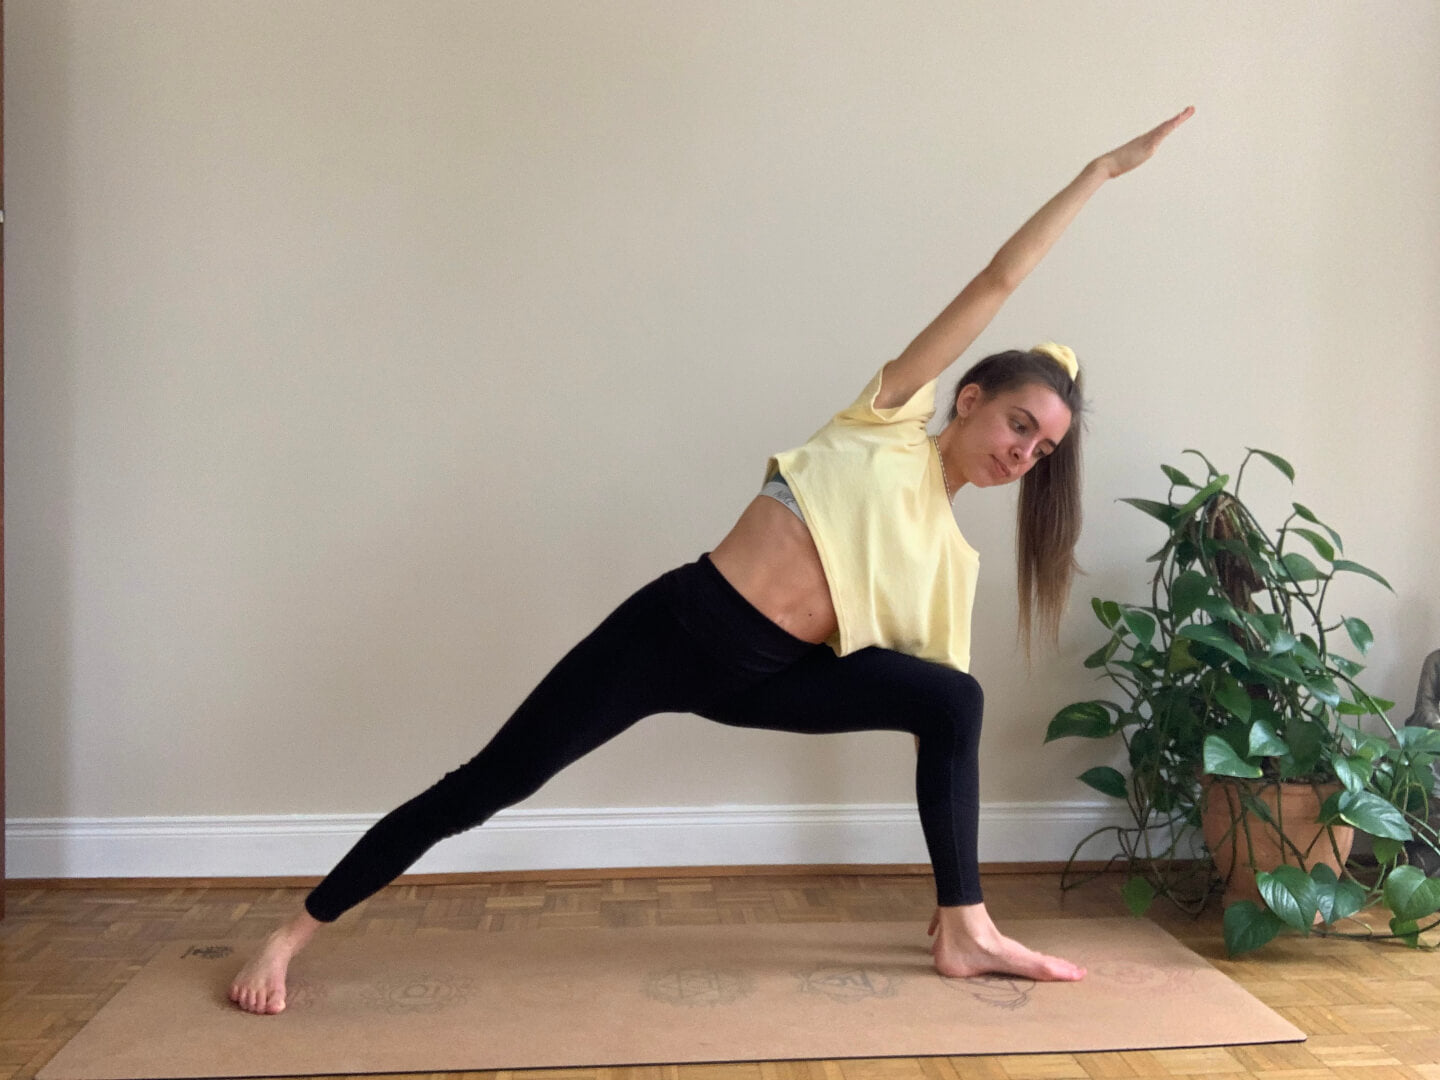 Amy Nevins demonstrating extended side angle pose